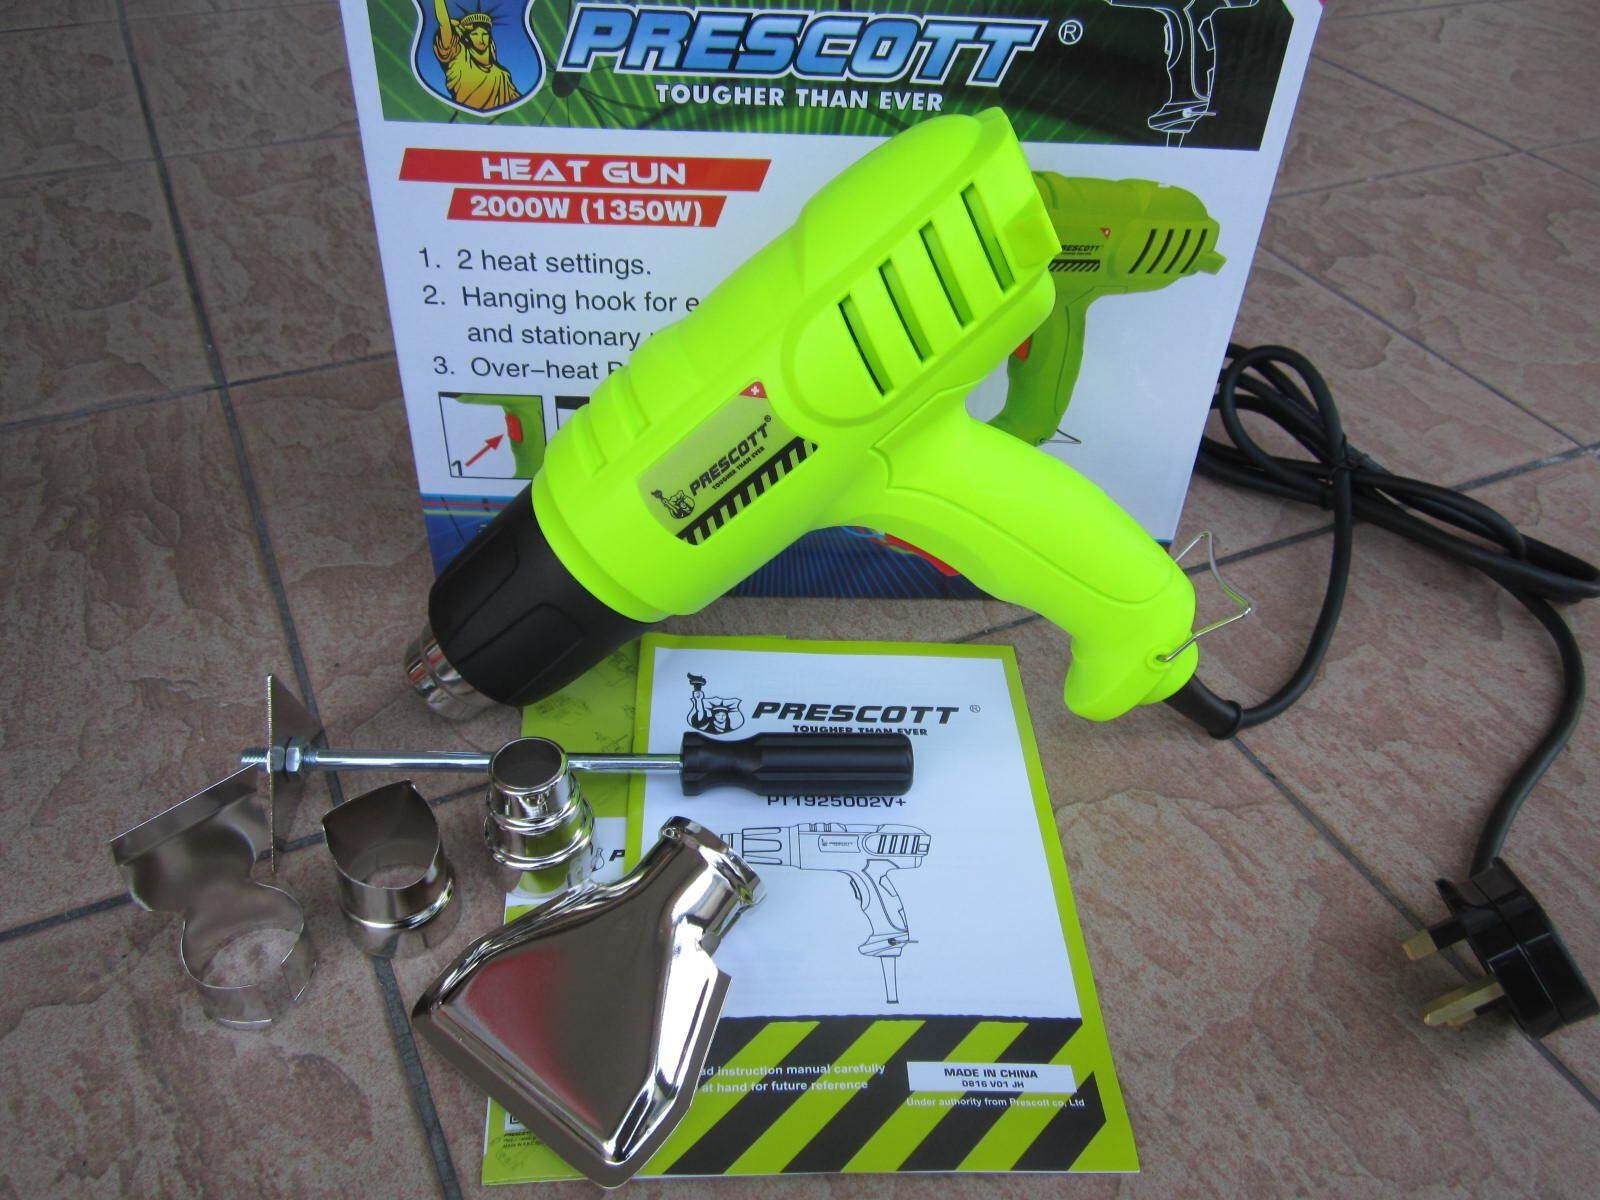 Prescott 2000W Electric Heat Gun, Heat Gun